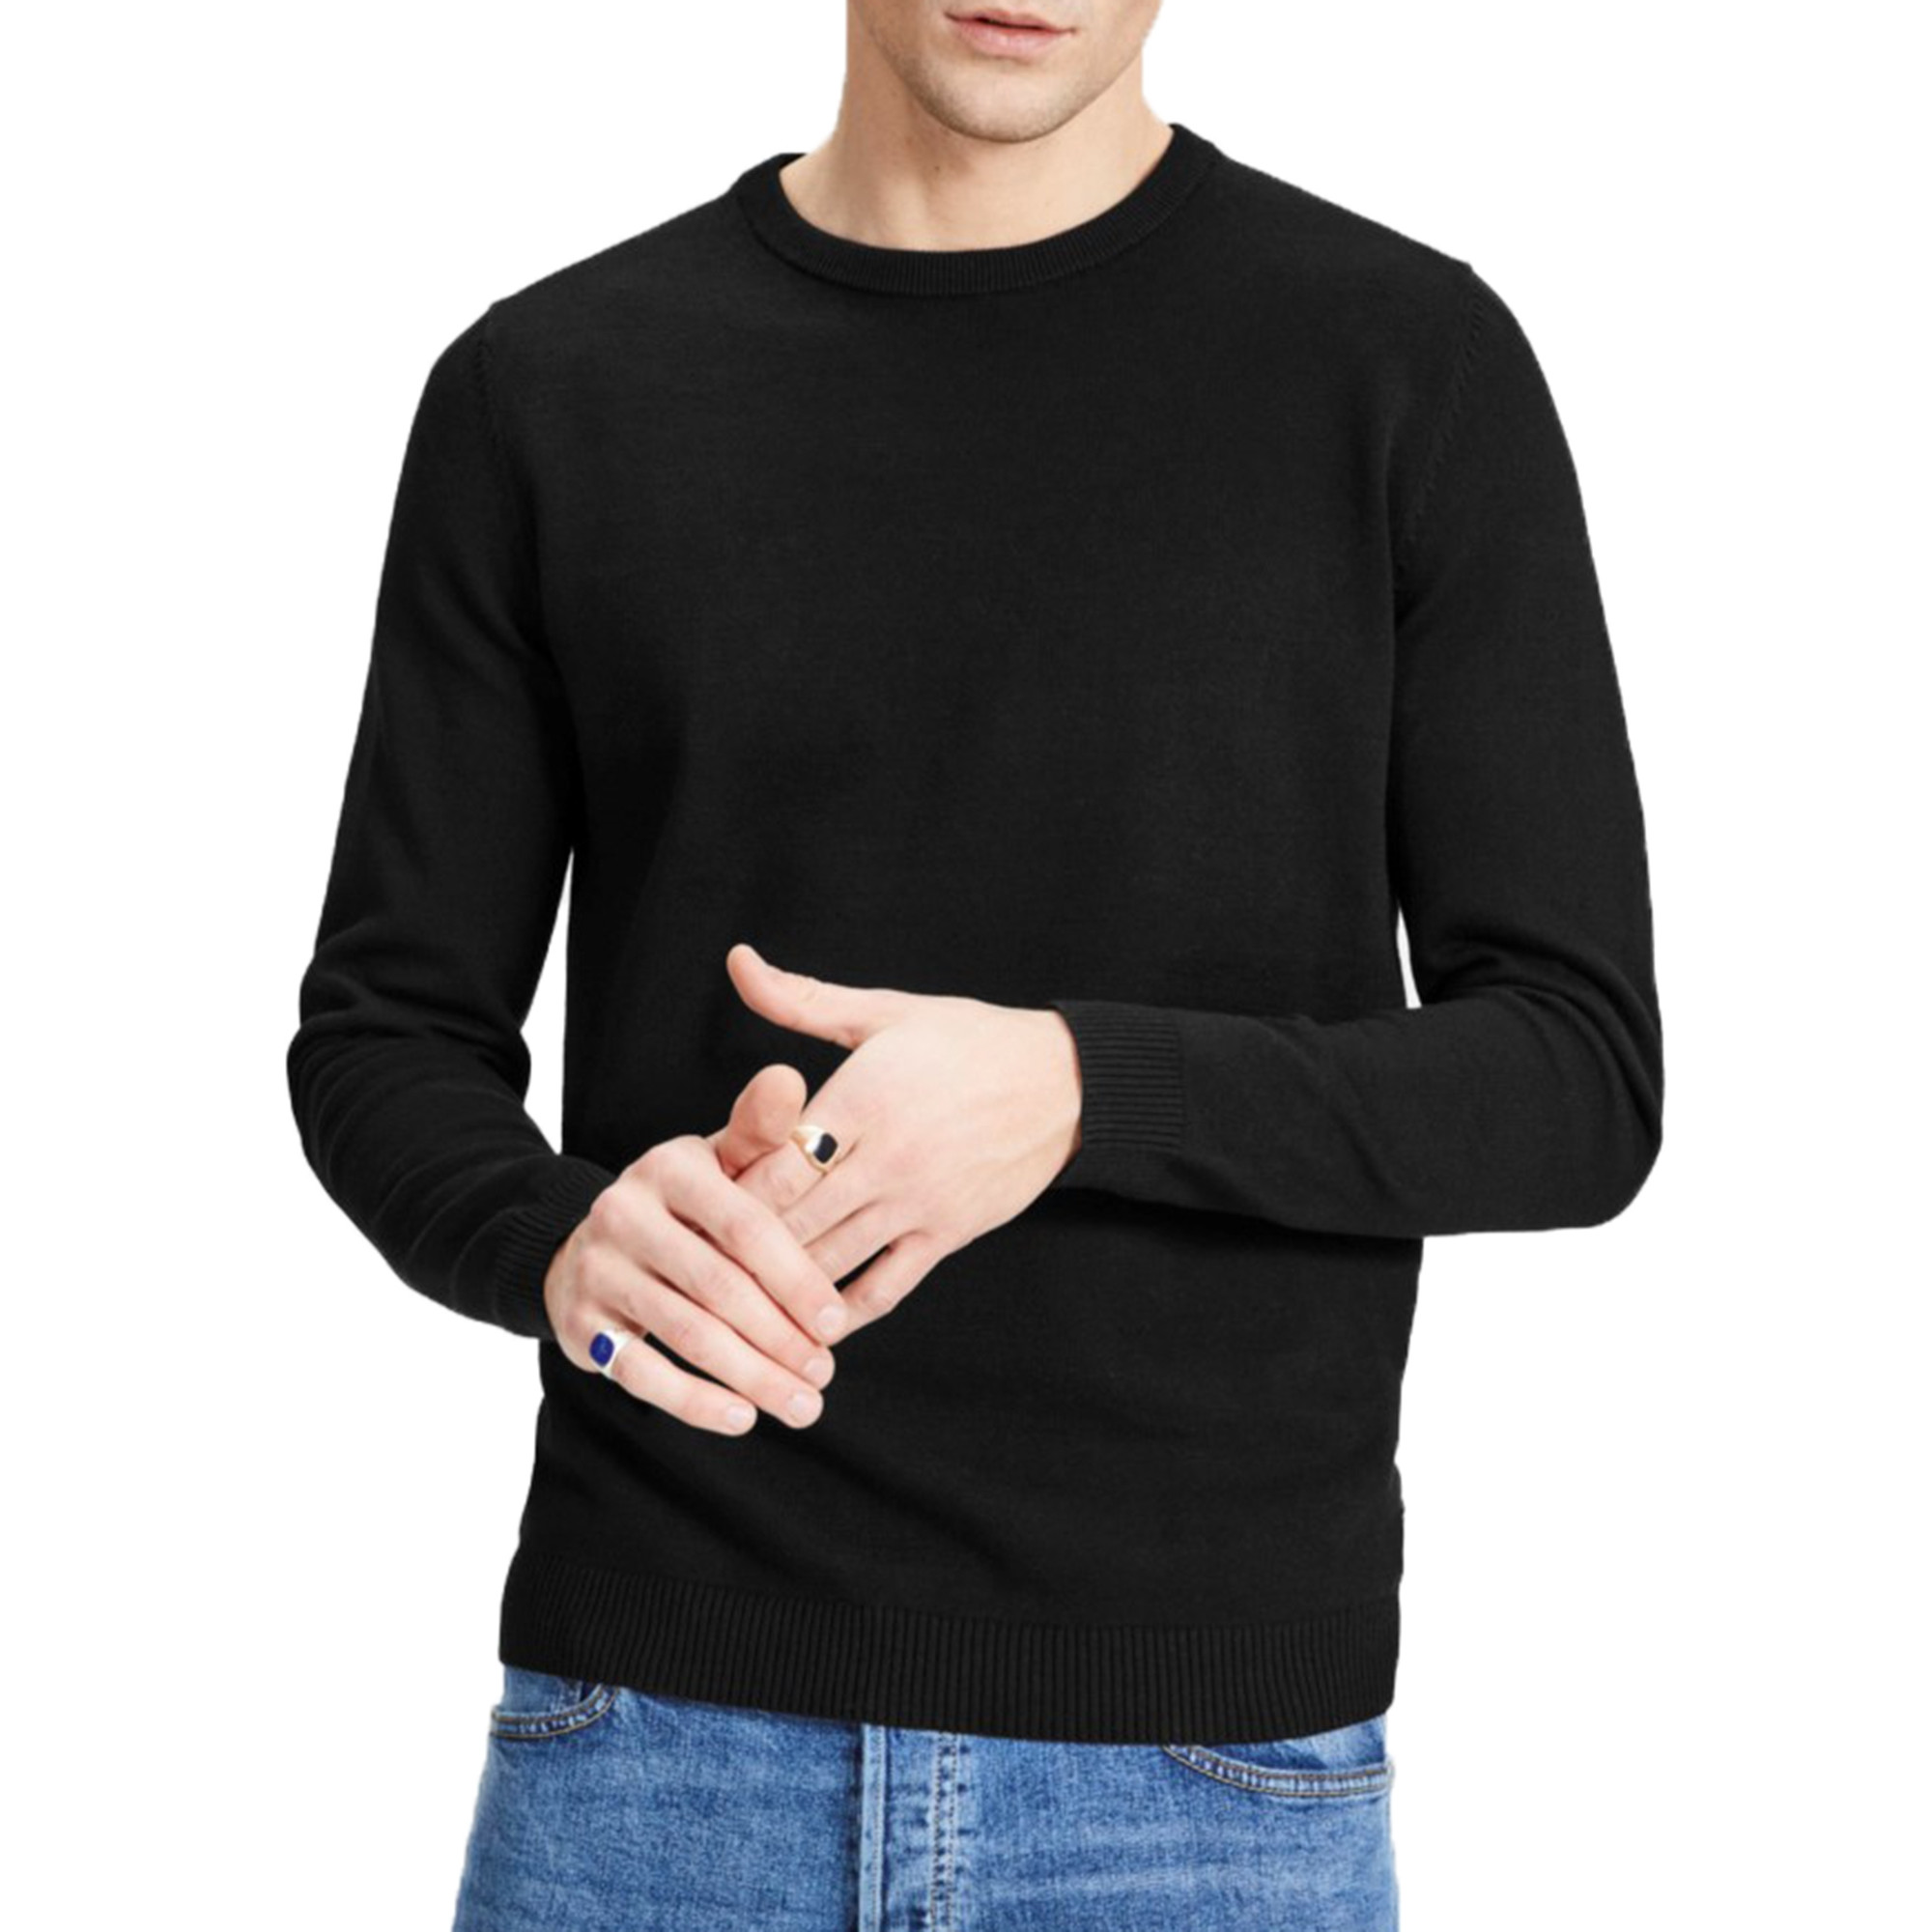 f3e03a9f11c868 Jack & Jones Crew Neck Cotton Knit Jumper Black | Jean Scene